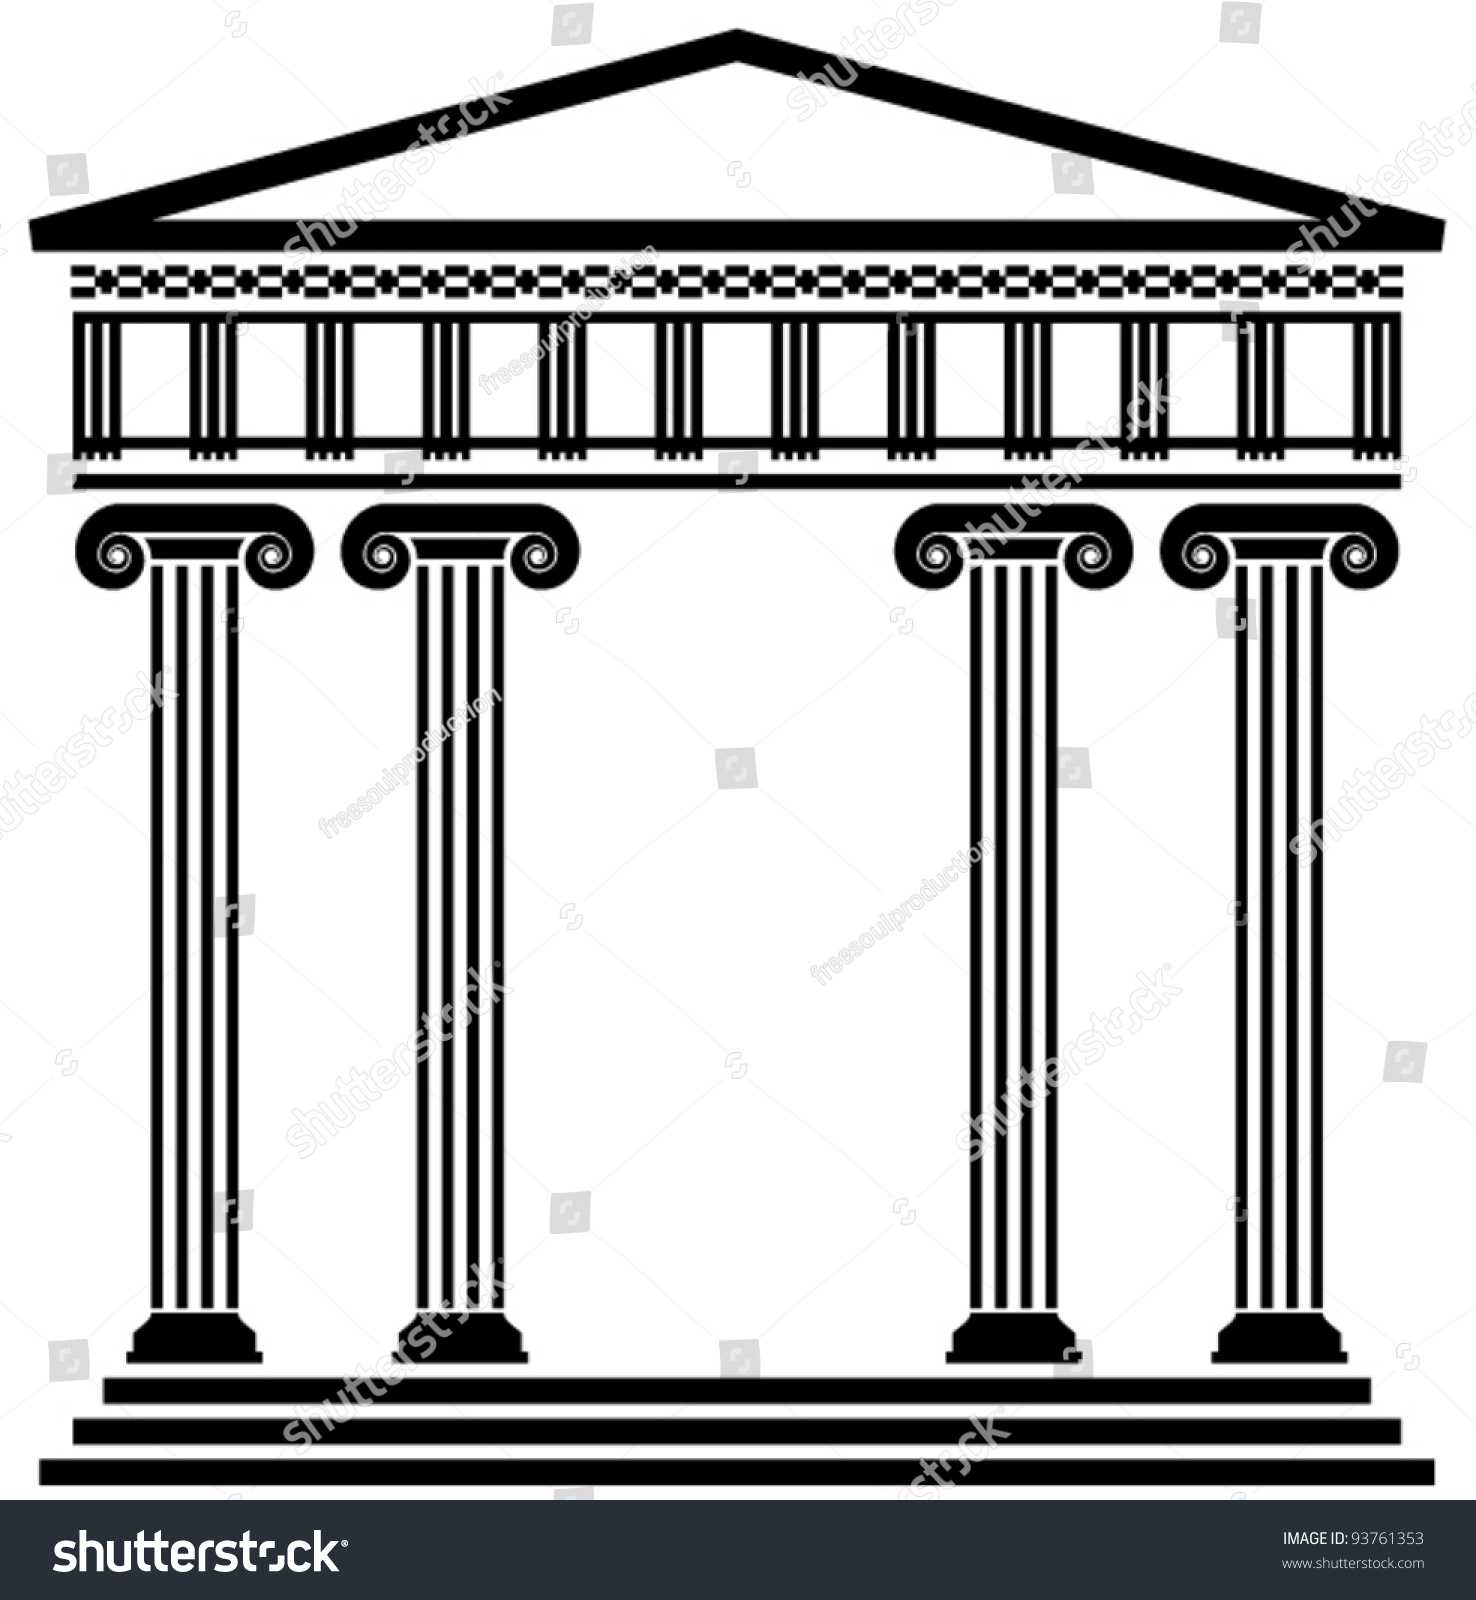 columns in greek architecture. greek columns of the classical orders ...